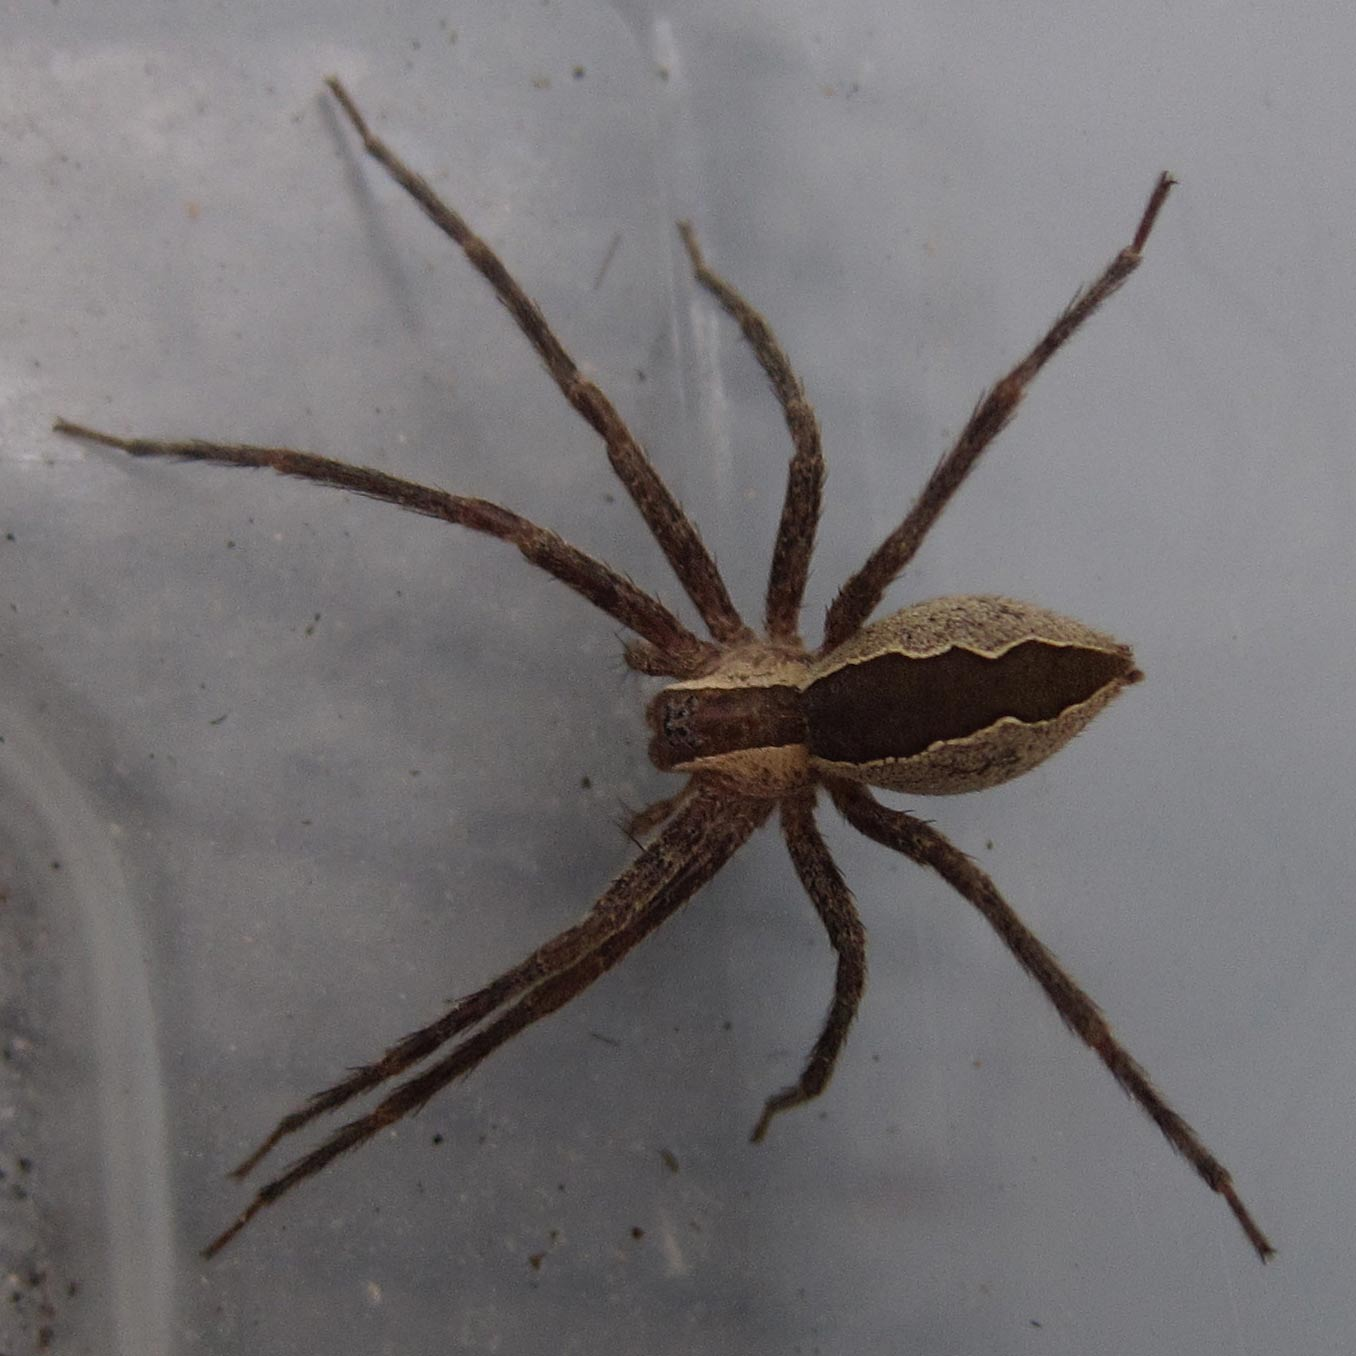 Spiders Of Cape Cod Part - 18: Nursery Web Spider